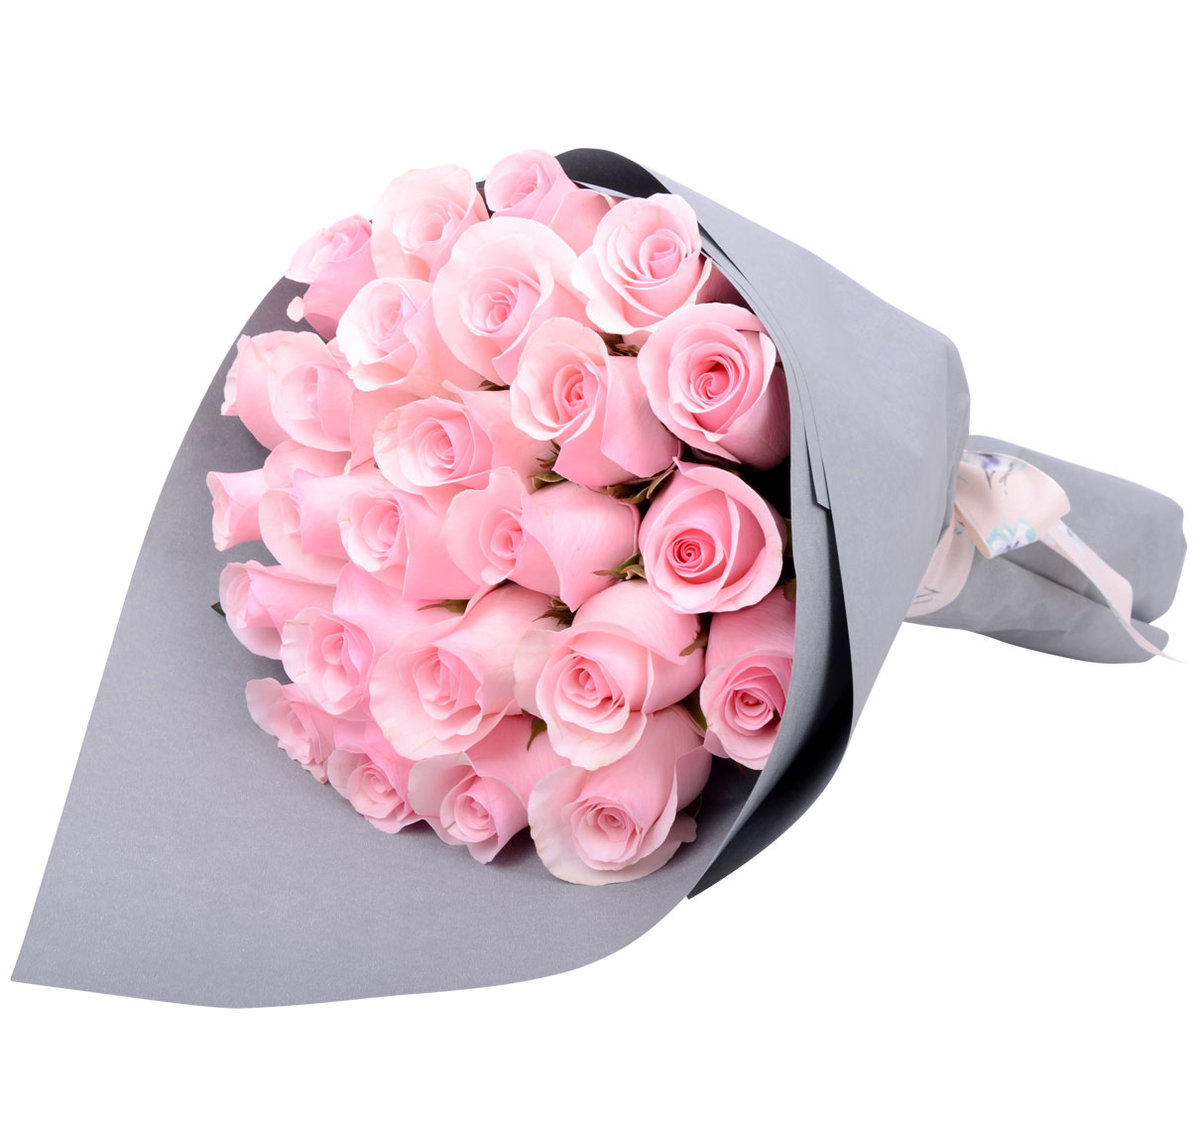 Gift Flowers Hk Pink Roses Only Bouquet 24 Stems E Voucher